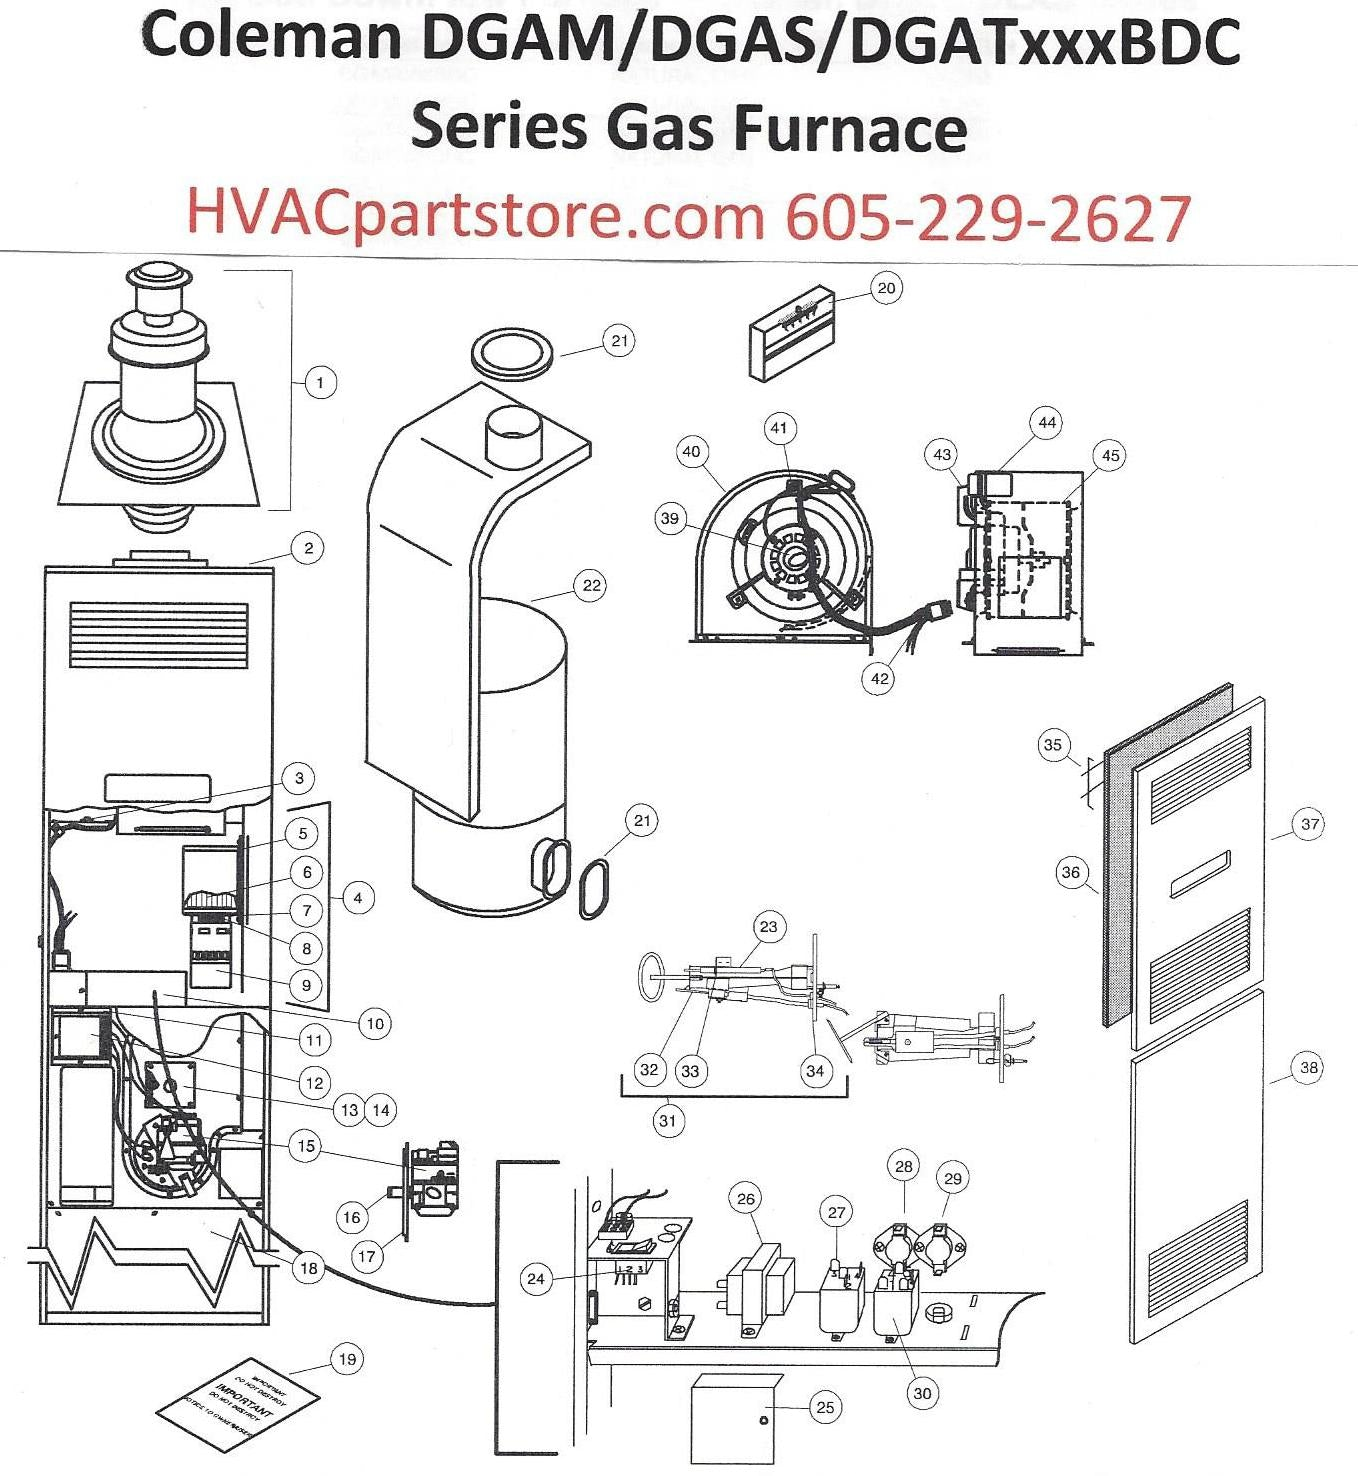 arcoaire furnace parts diagram all about repair and wiring arcoaire furnace parts diagram heil furnace wiring diagram nilzanet dla xbdcdiagram 89aa 9298 d86afb9177f3 heil